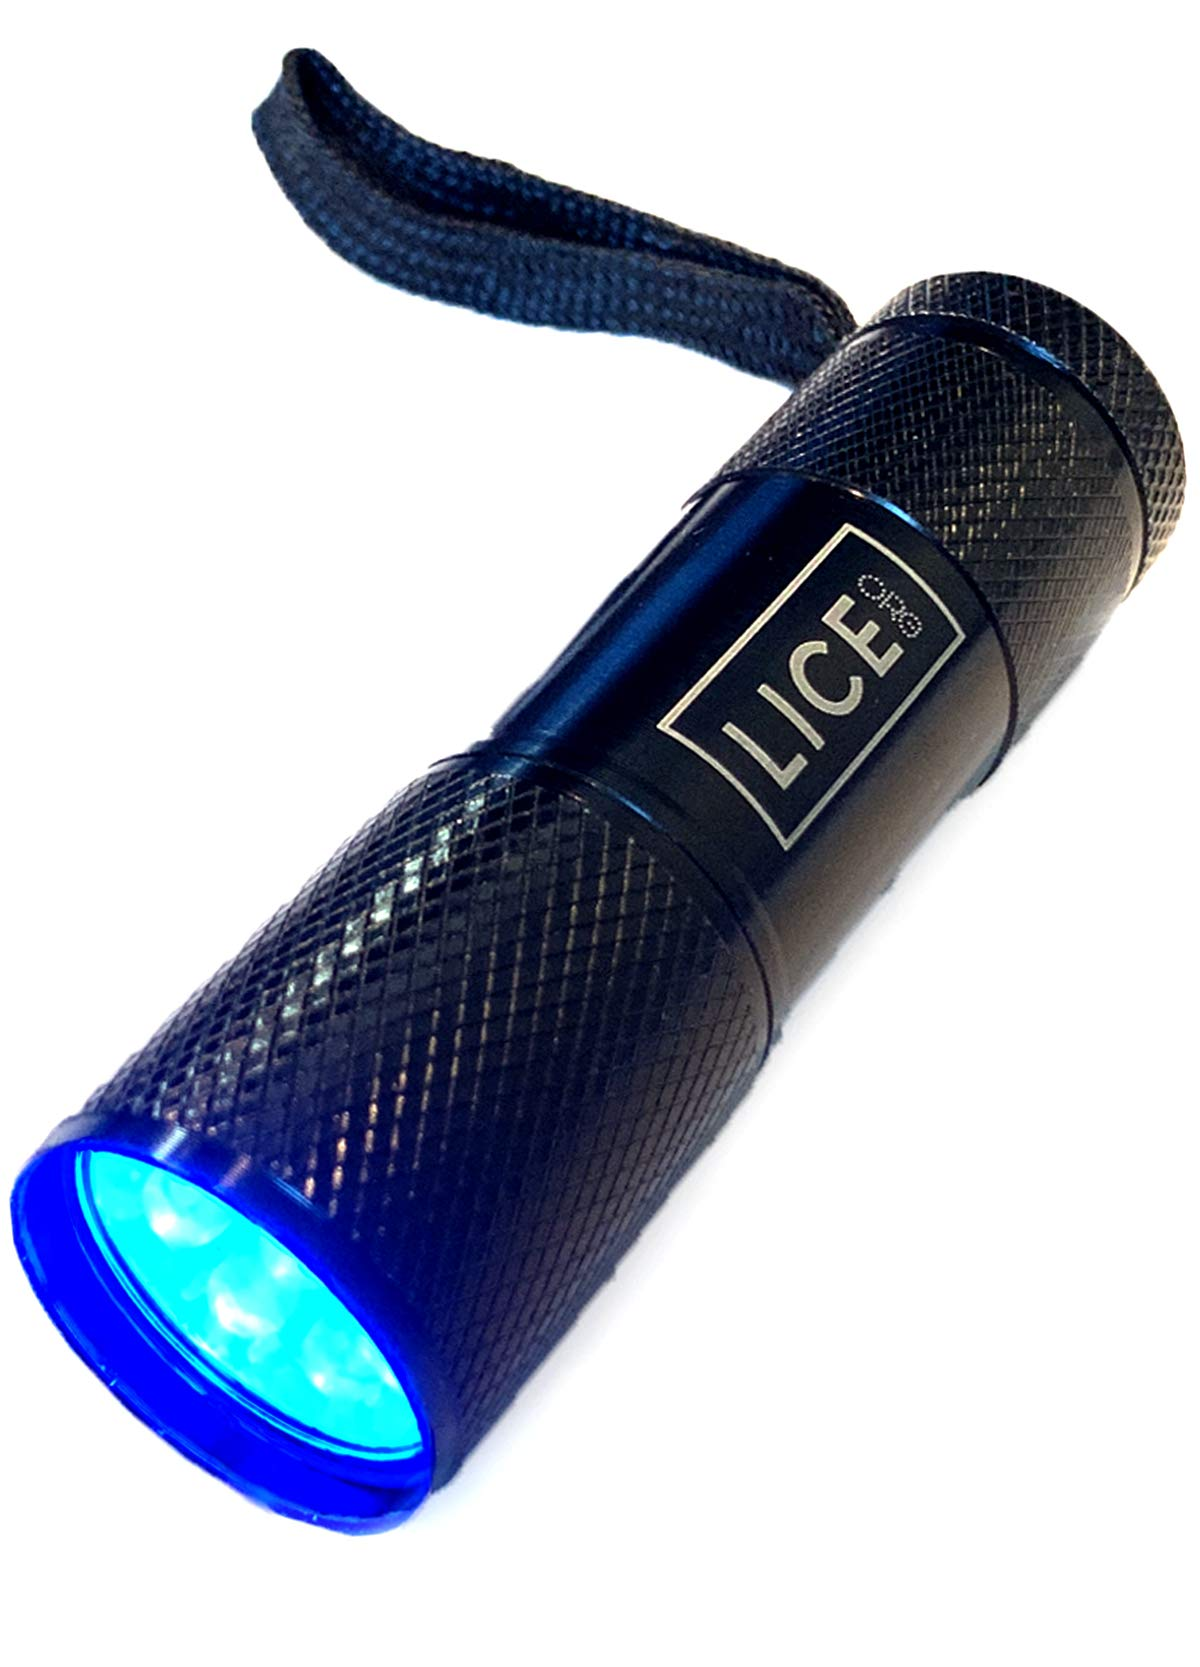 Official LICE.ORG Lice Light - Blacklight/UV Flashlight to Detect Head Lice, Bed Bugs Or Pet Urine (5)